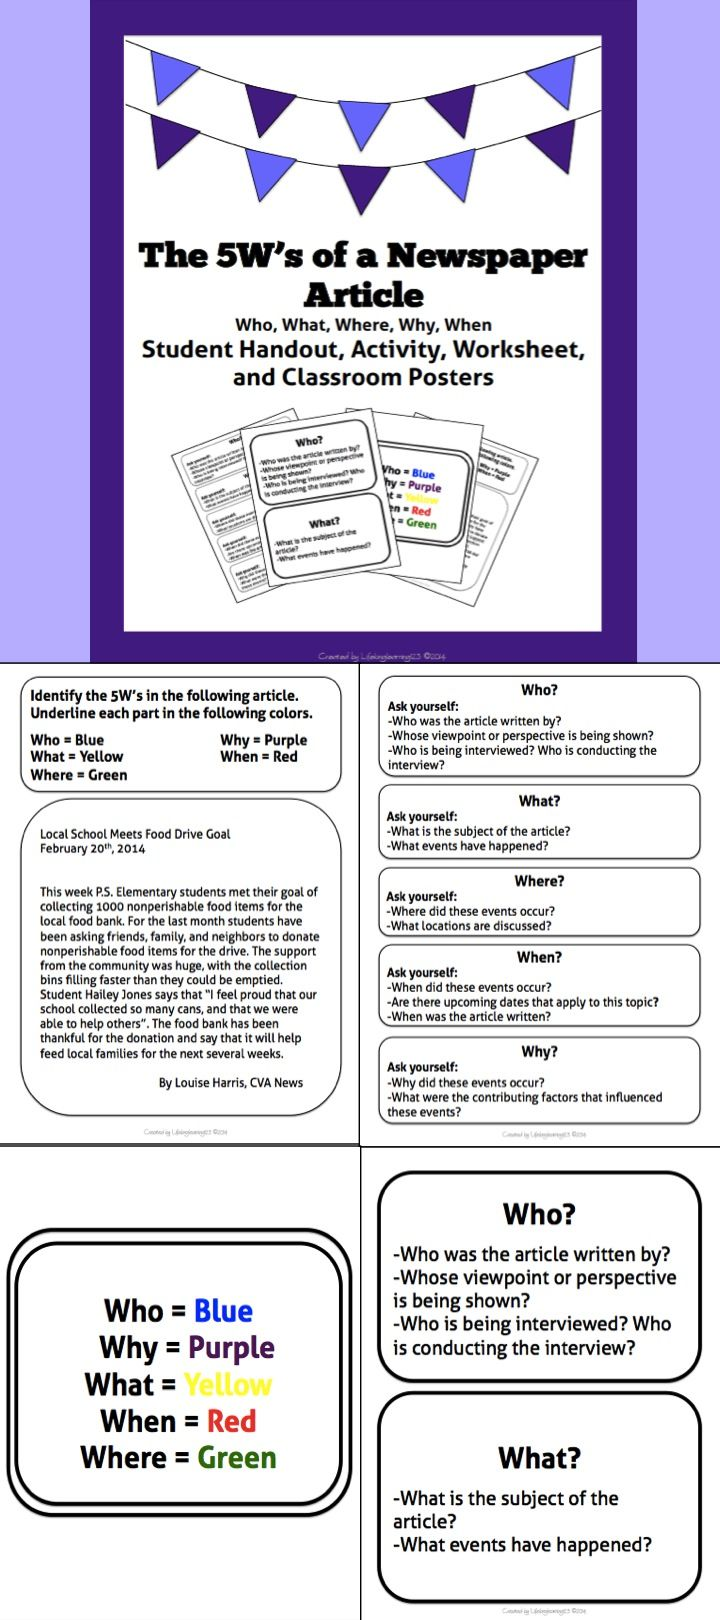 15 Best Creating A Newspaper For The Class Room Images On Pinterest